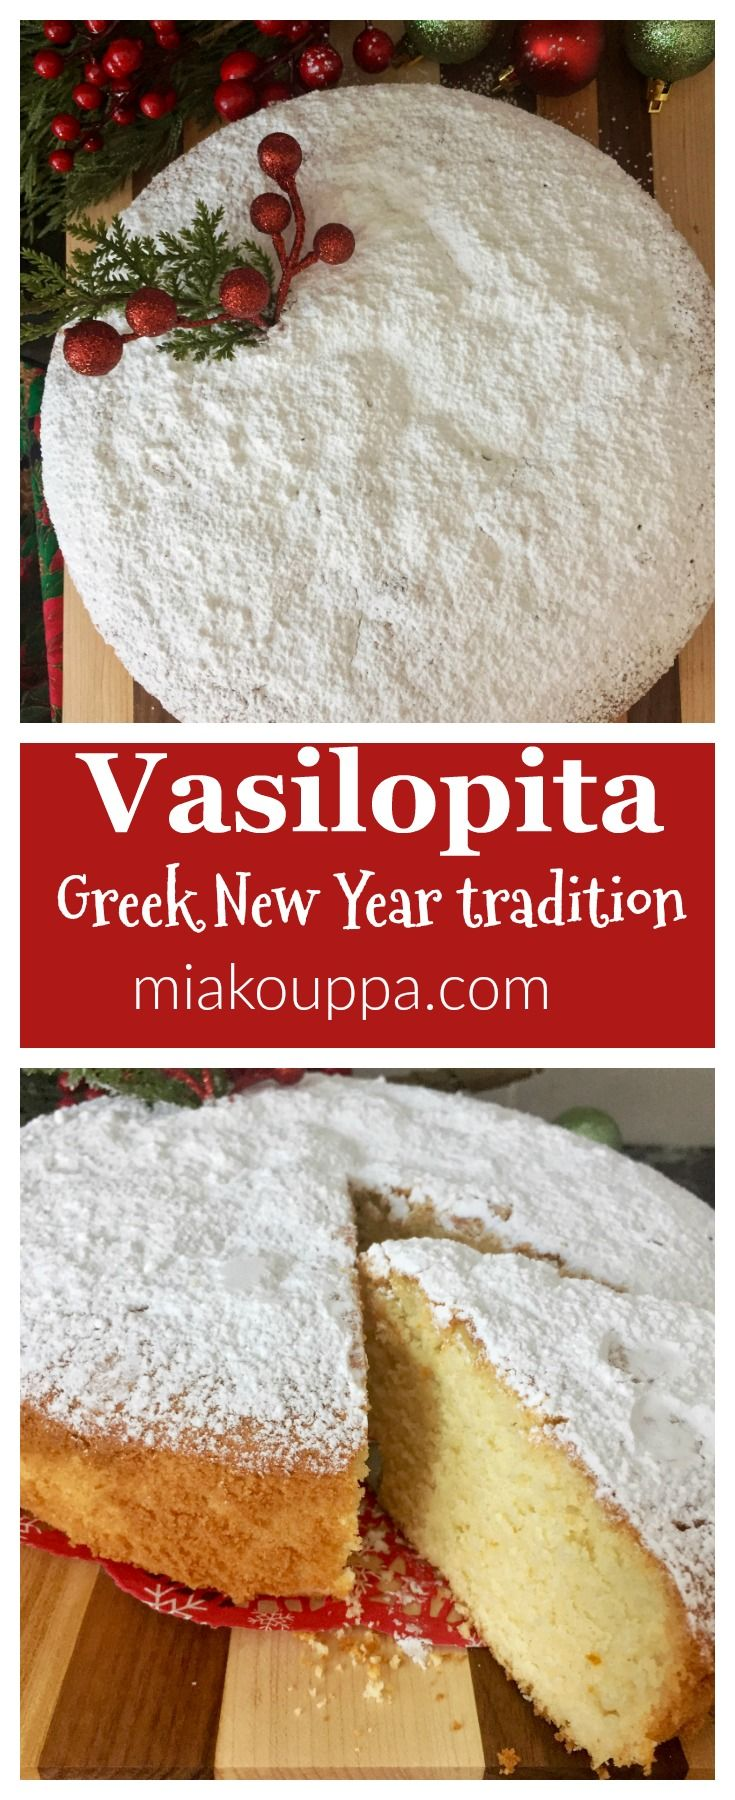 Happy New Year y'all! Vasilopita (Βασιλόπιτα). An easy and delicious recipe, for the traditional Greek cake served for New Years!